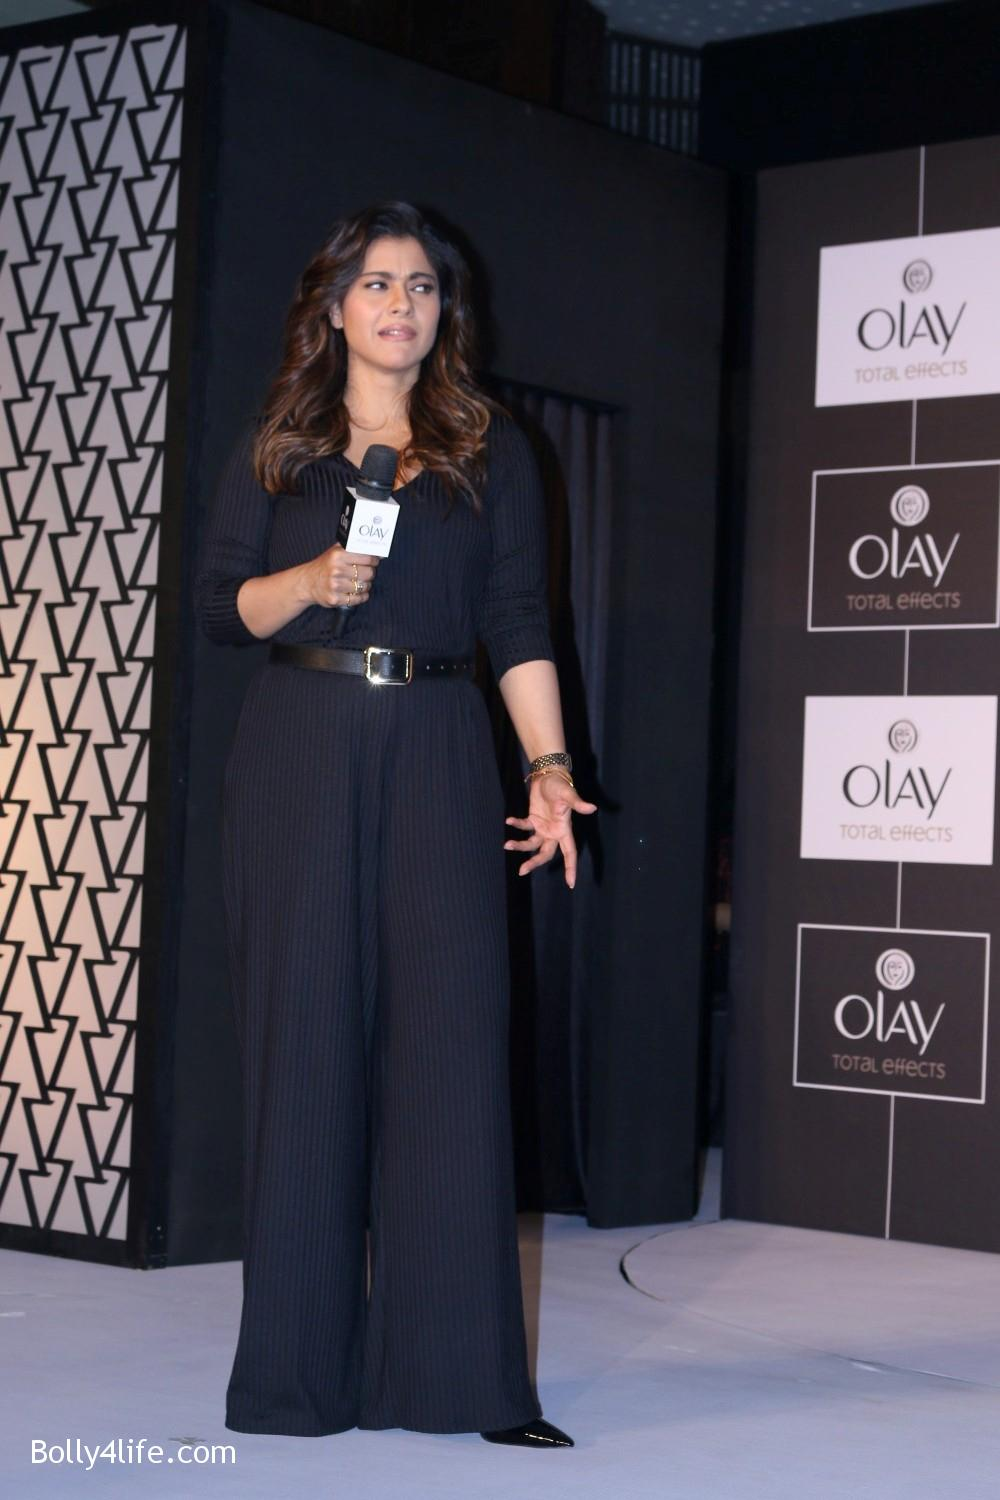 Kajol-Devgan-during-the-launch-of-Olay-Total-Effects-new-cream-11.jpg